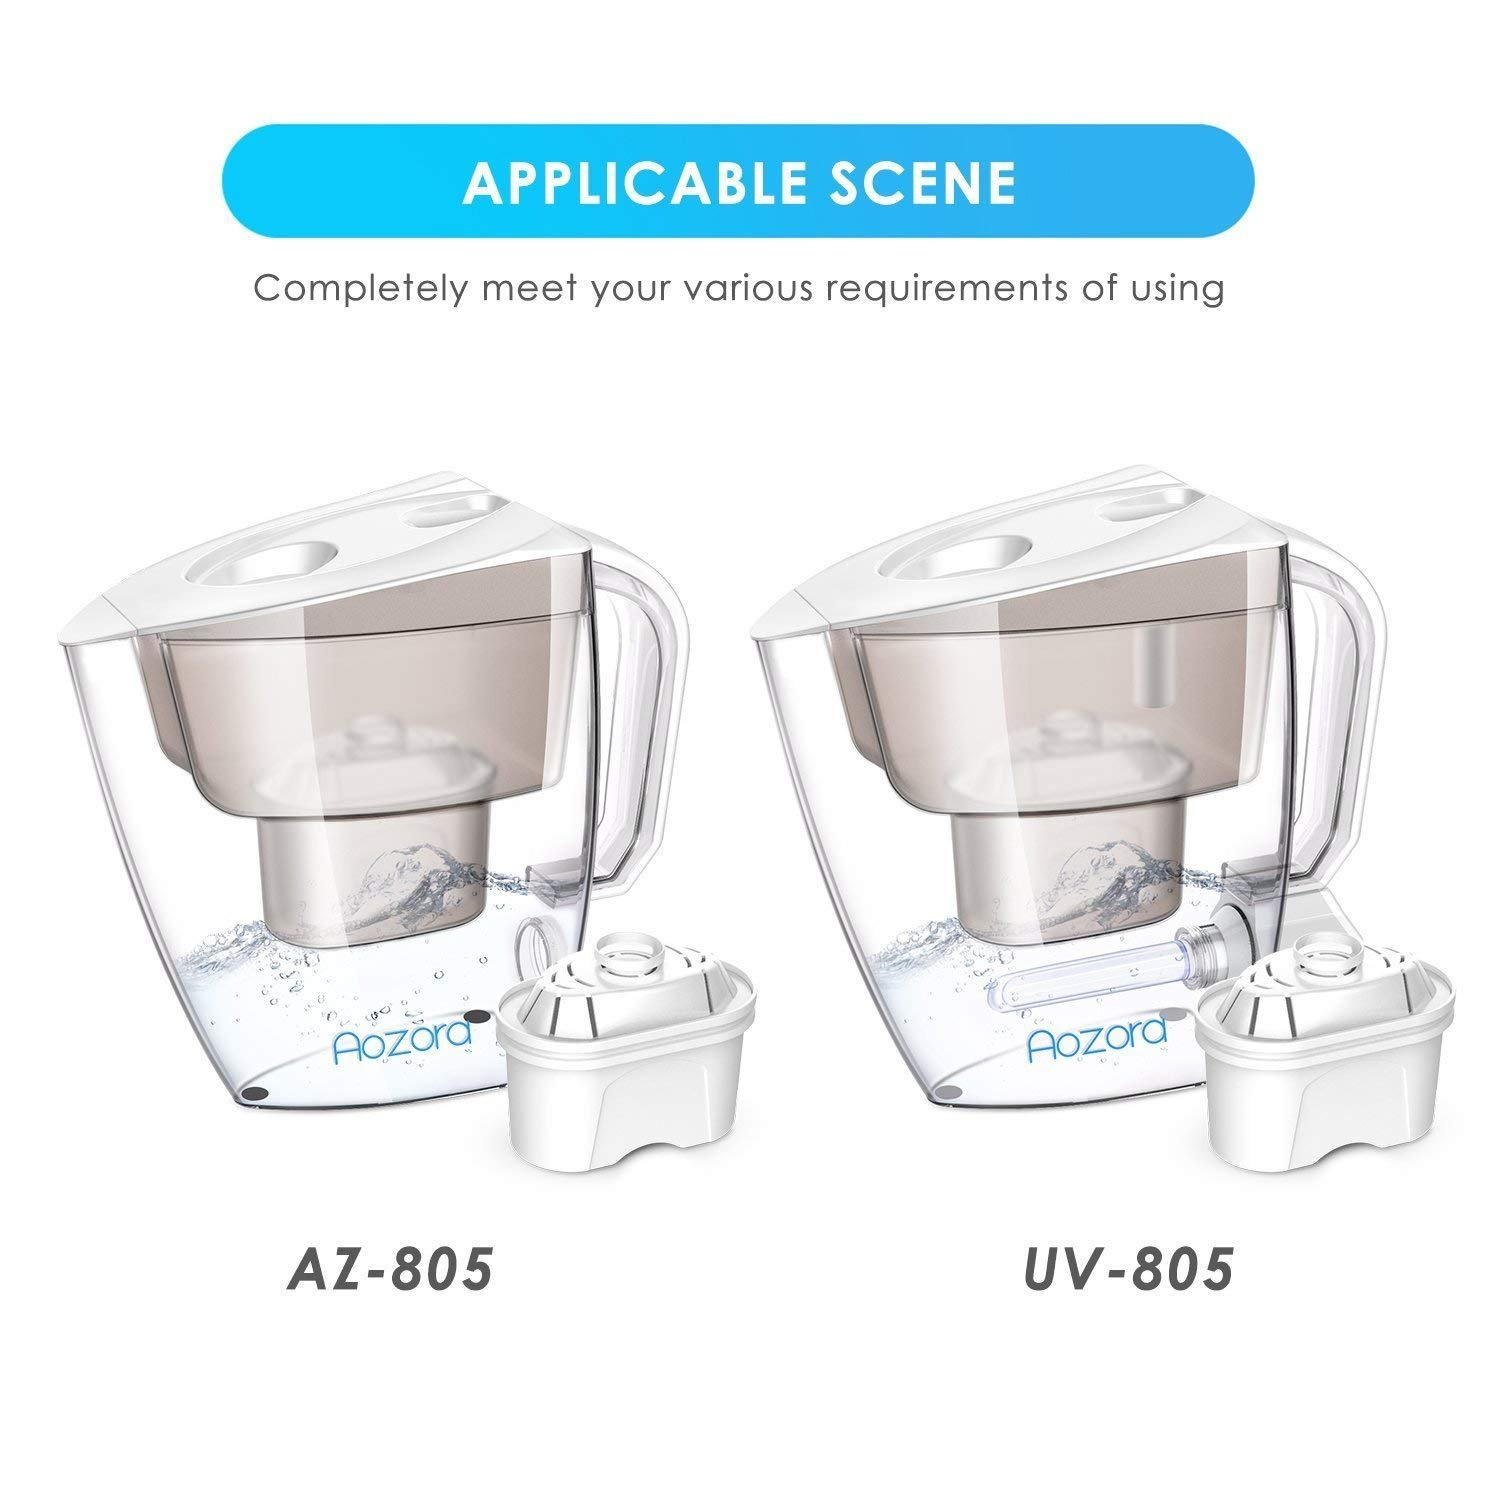 Aozora Replacement Filter Water Pitcher with 4-Stage Filtration for Reducing Lead, Mercury, Zinc, and Removing Chlorine Taste & Odor, Drinking Water Filter for Pitcher by Aozora (Image #4)